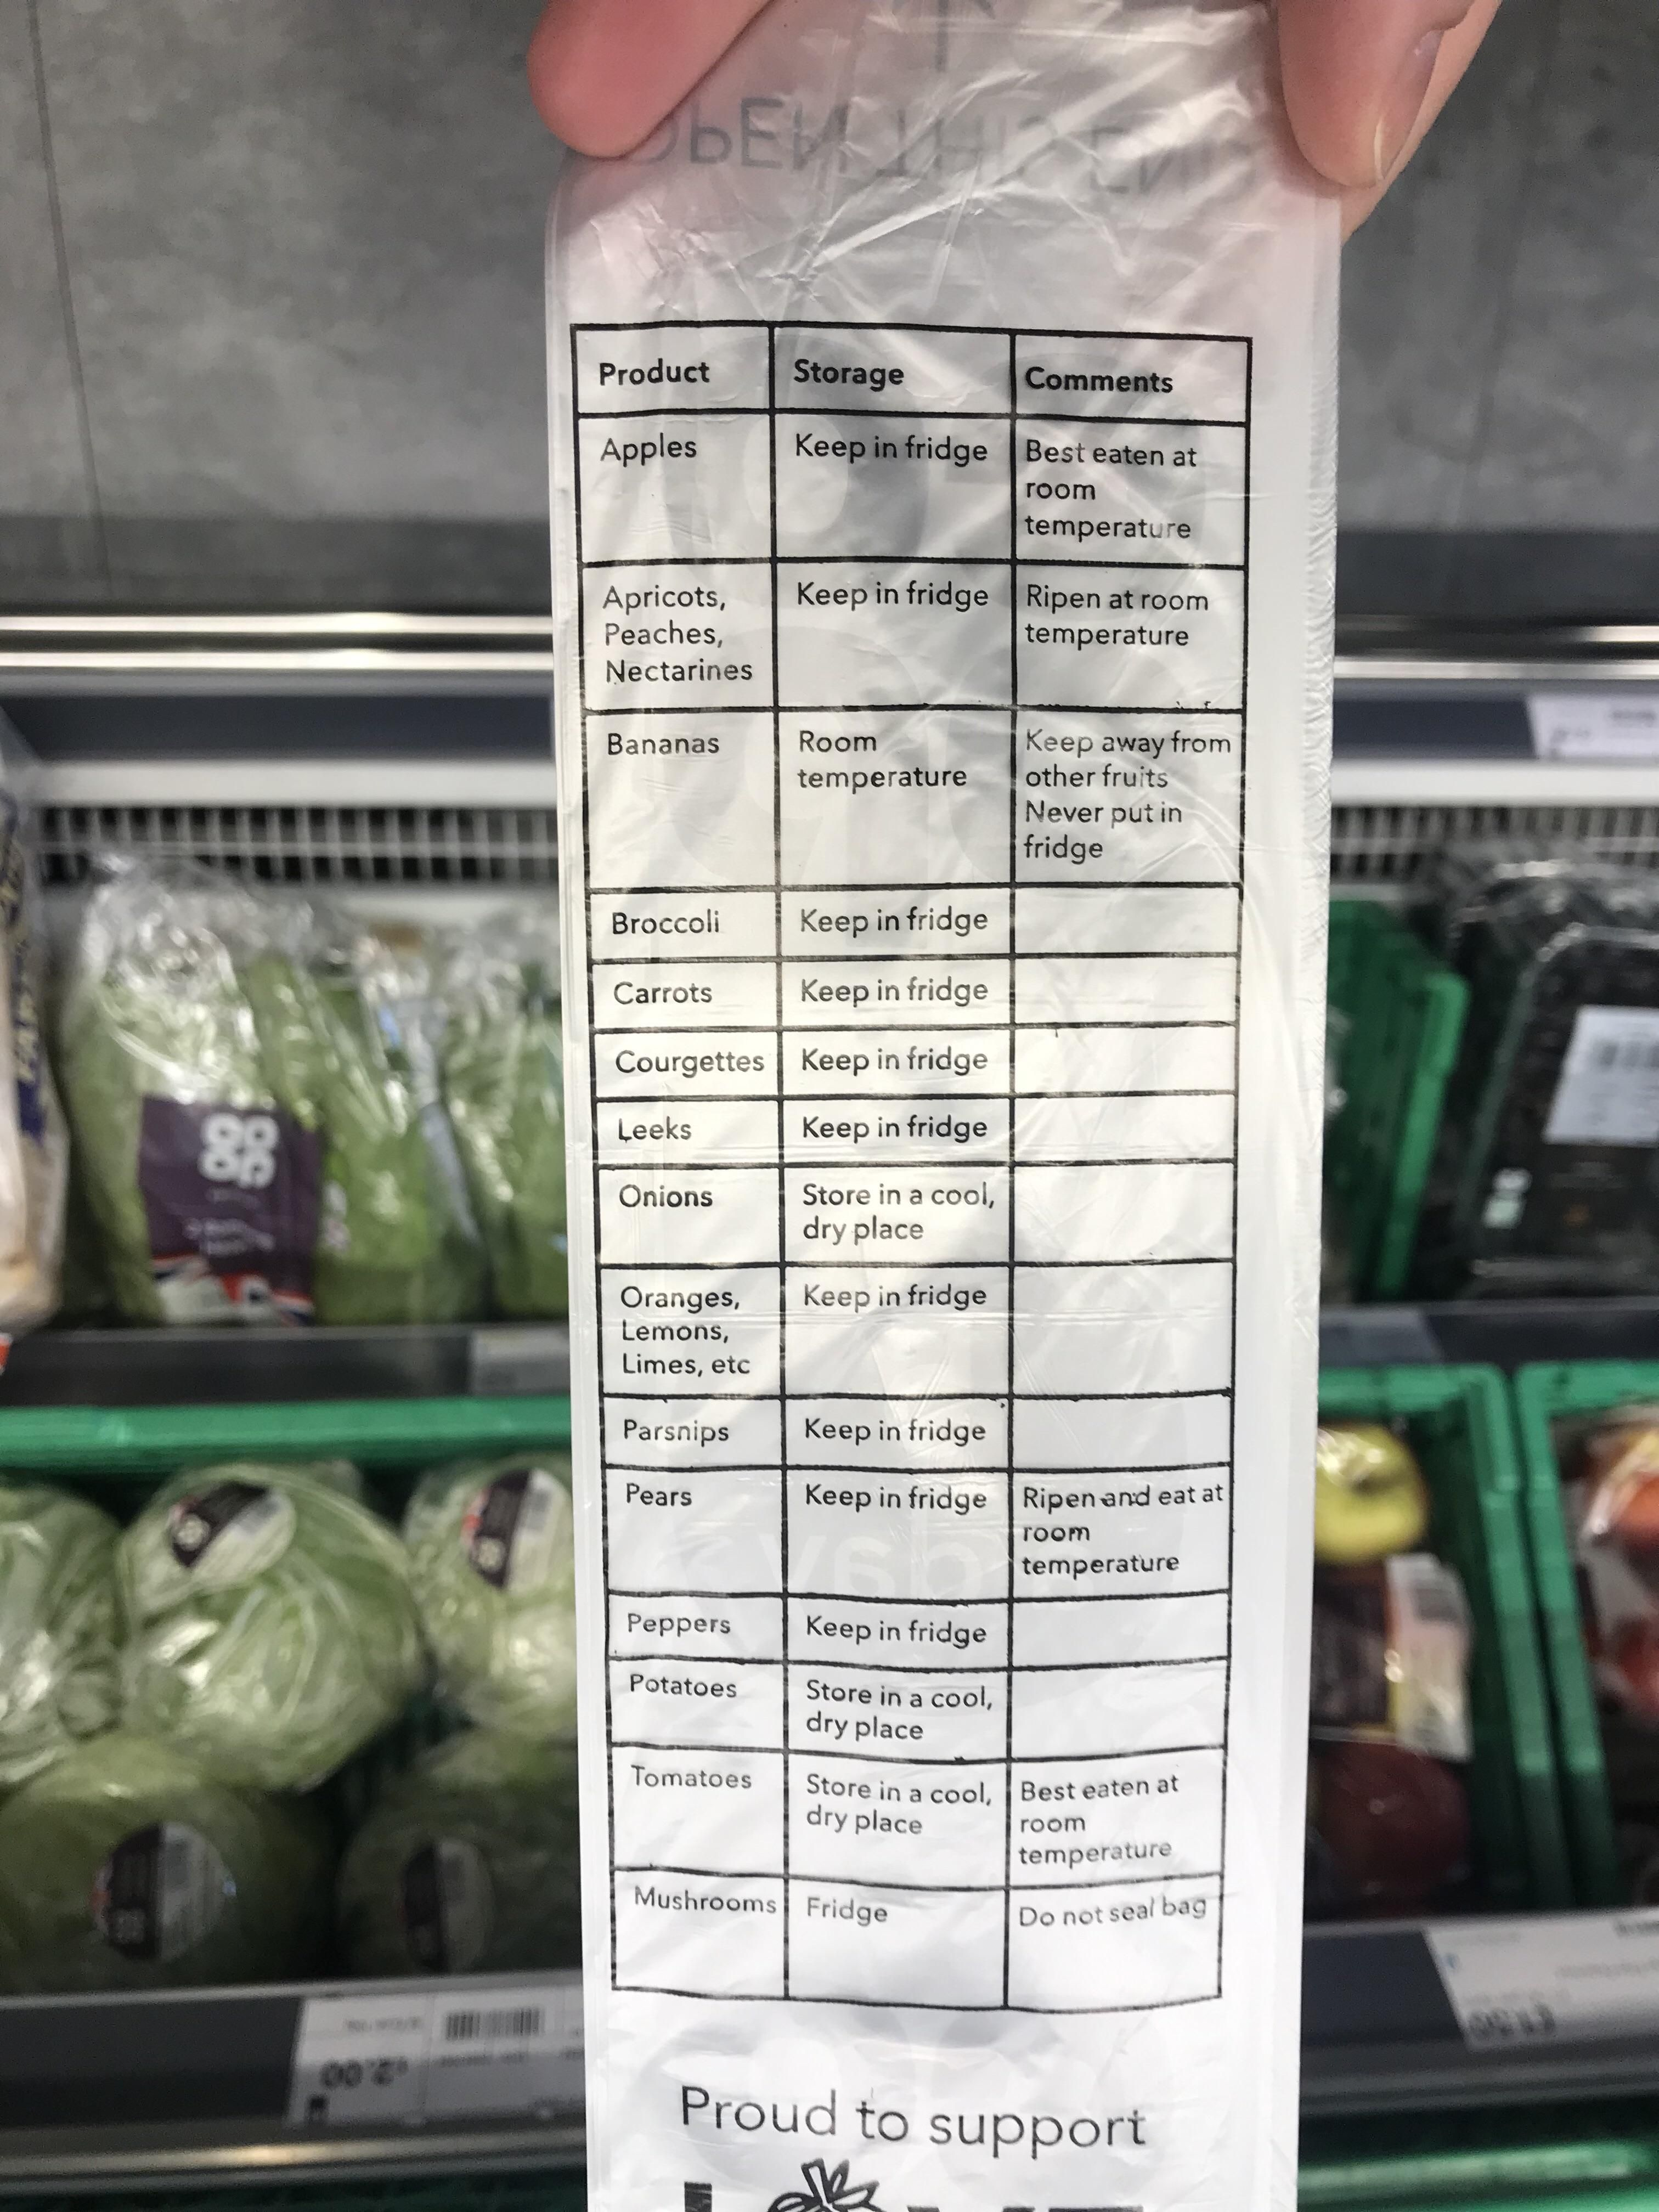 I love how this supermarket prints out instructions on how